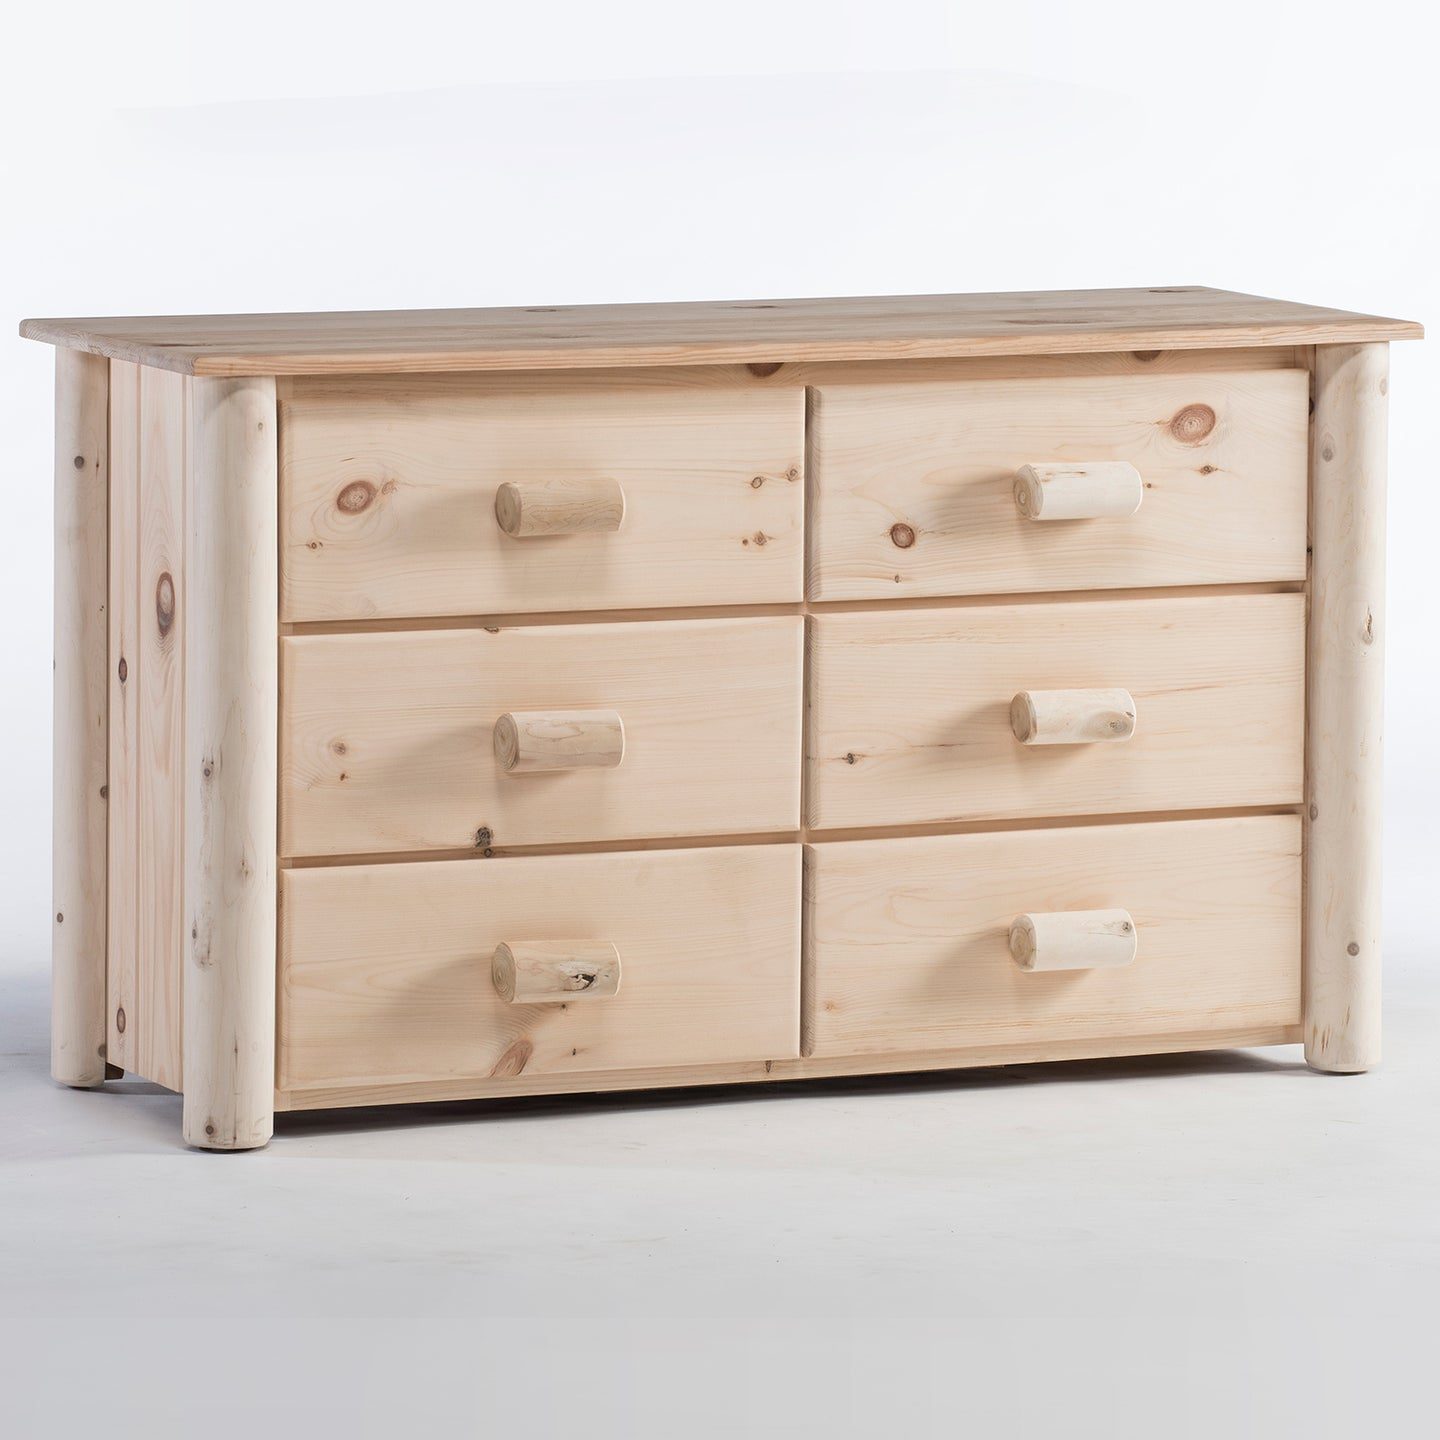 Lakeland Mills Frontier 6 Drawer Dresser/Choice of Finish